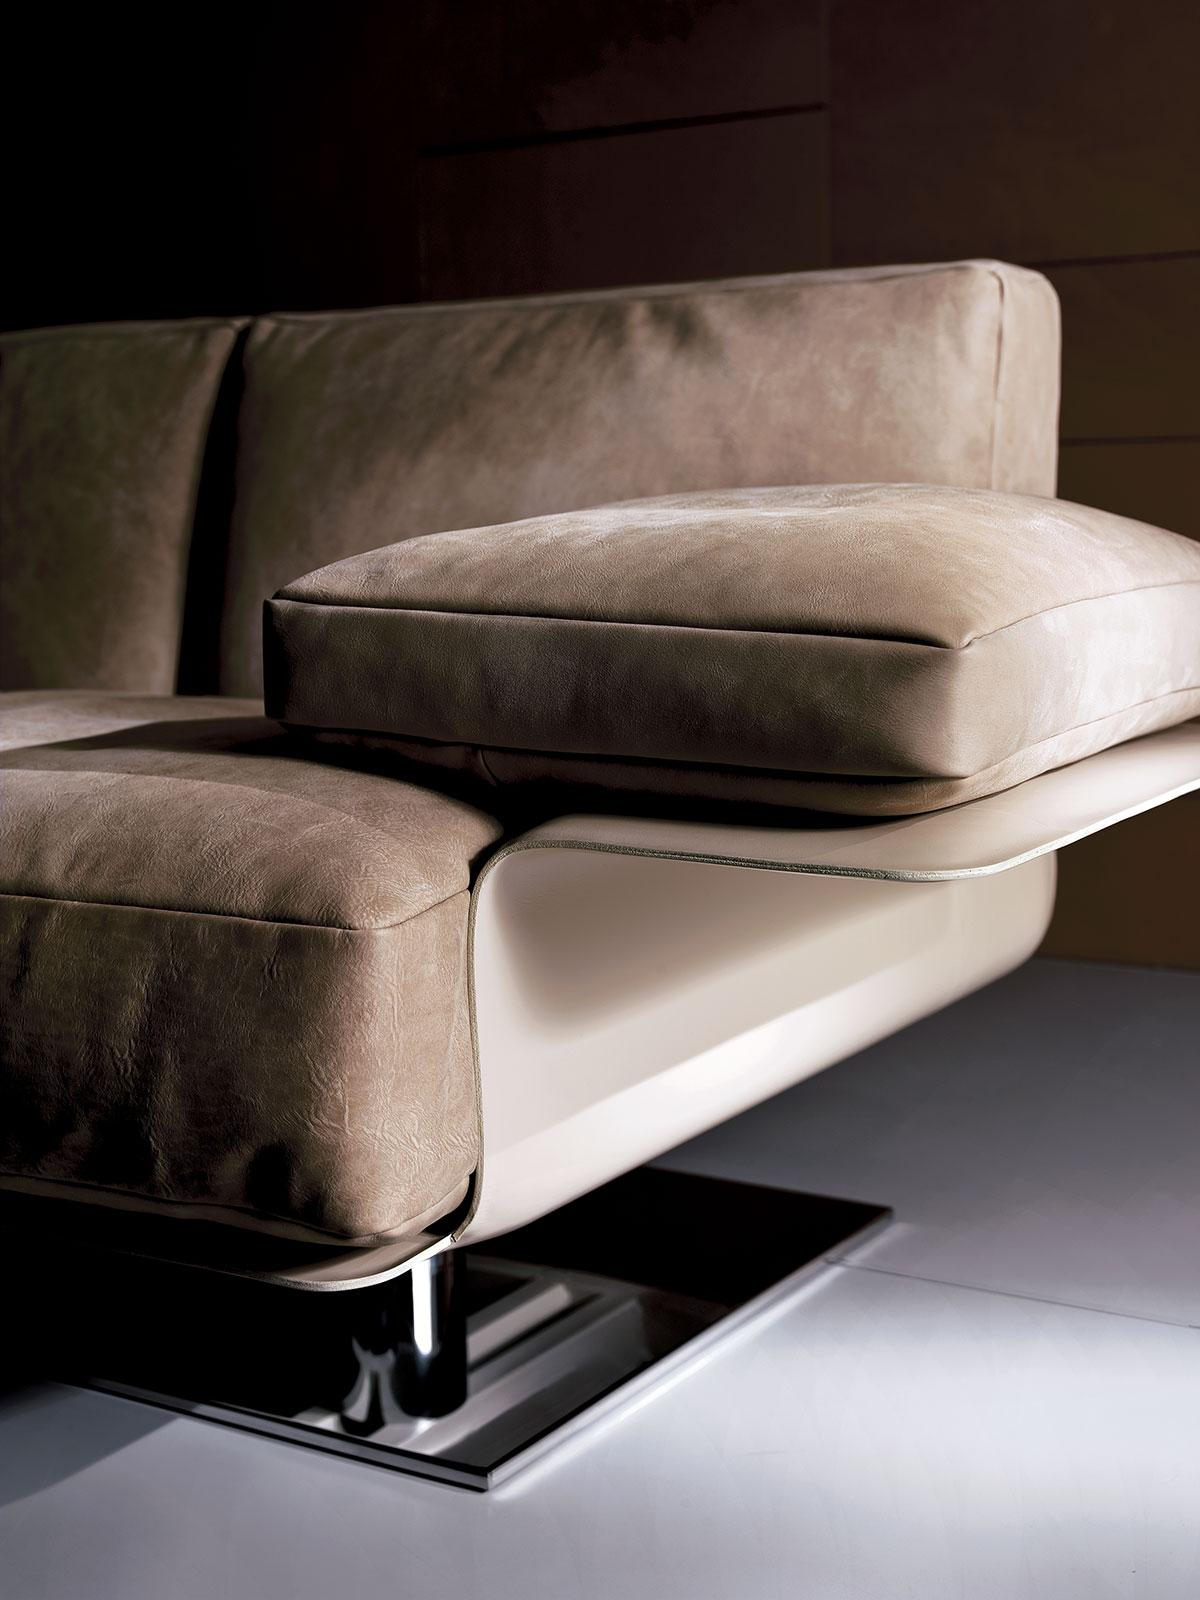 Leather Home Sofas Hd Most favored Home Design